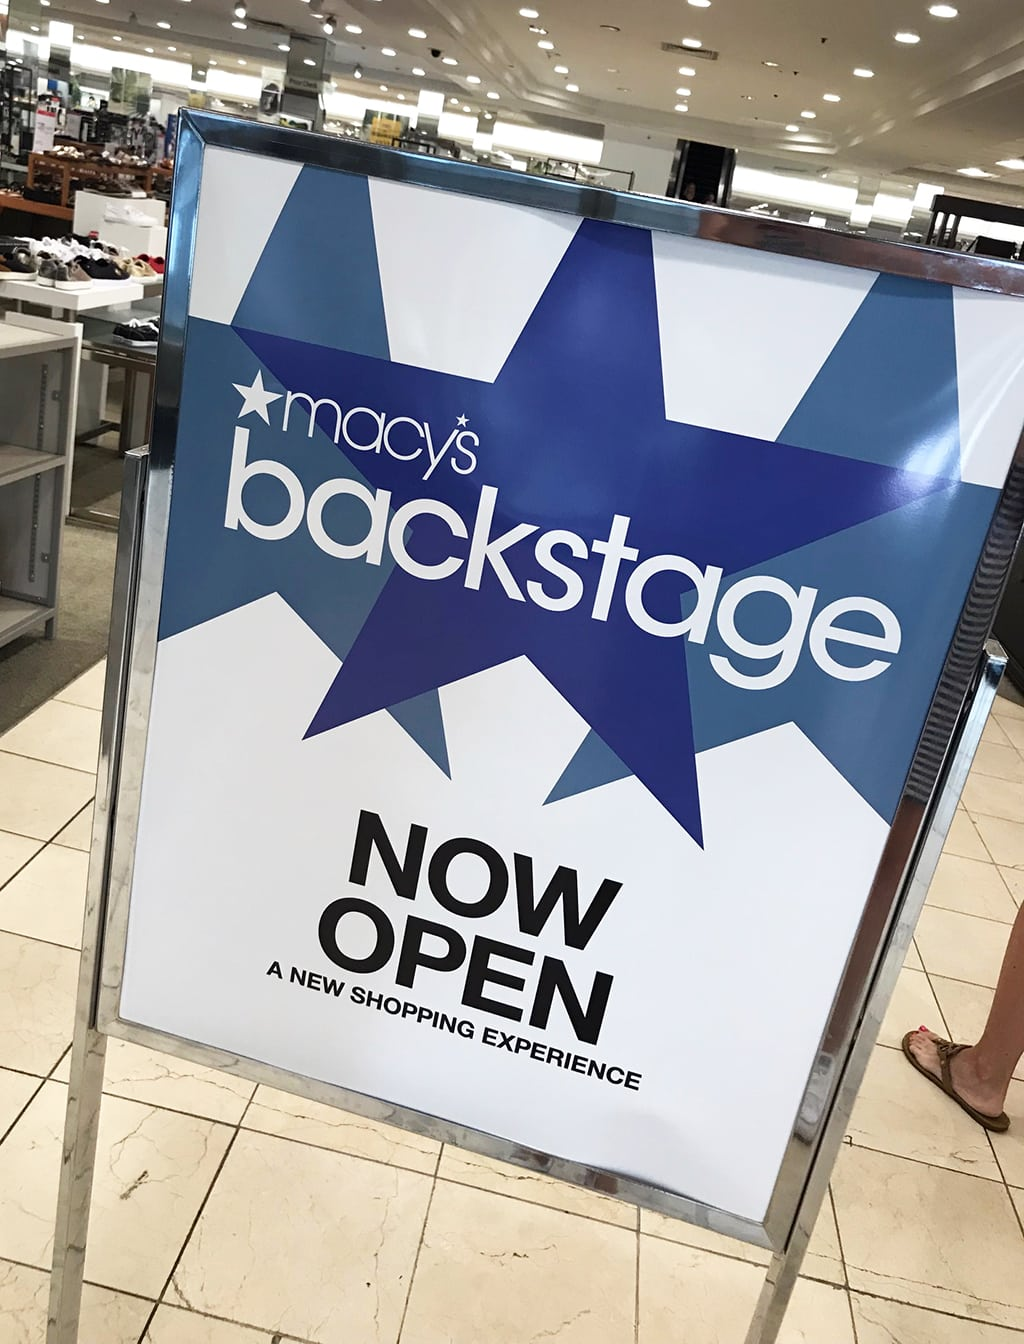 Macy's Backstage Sign